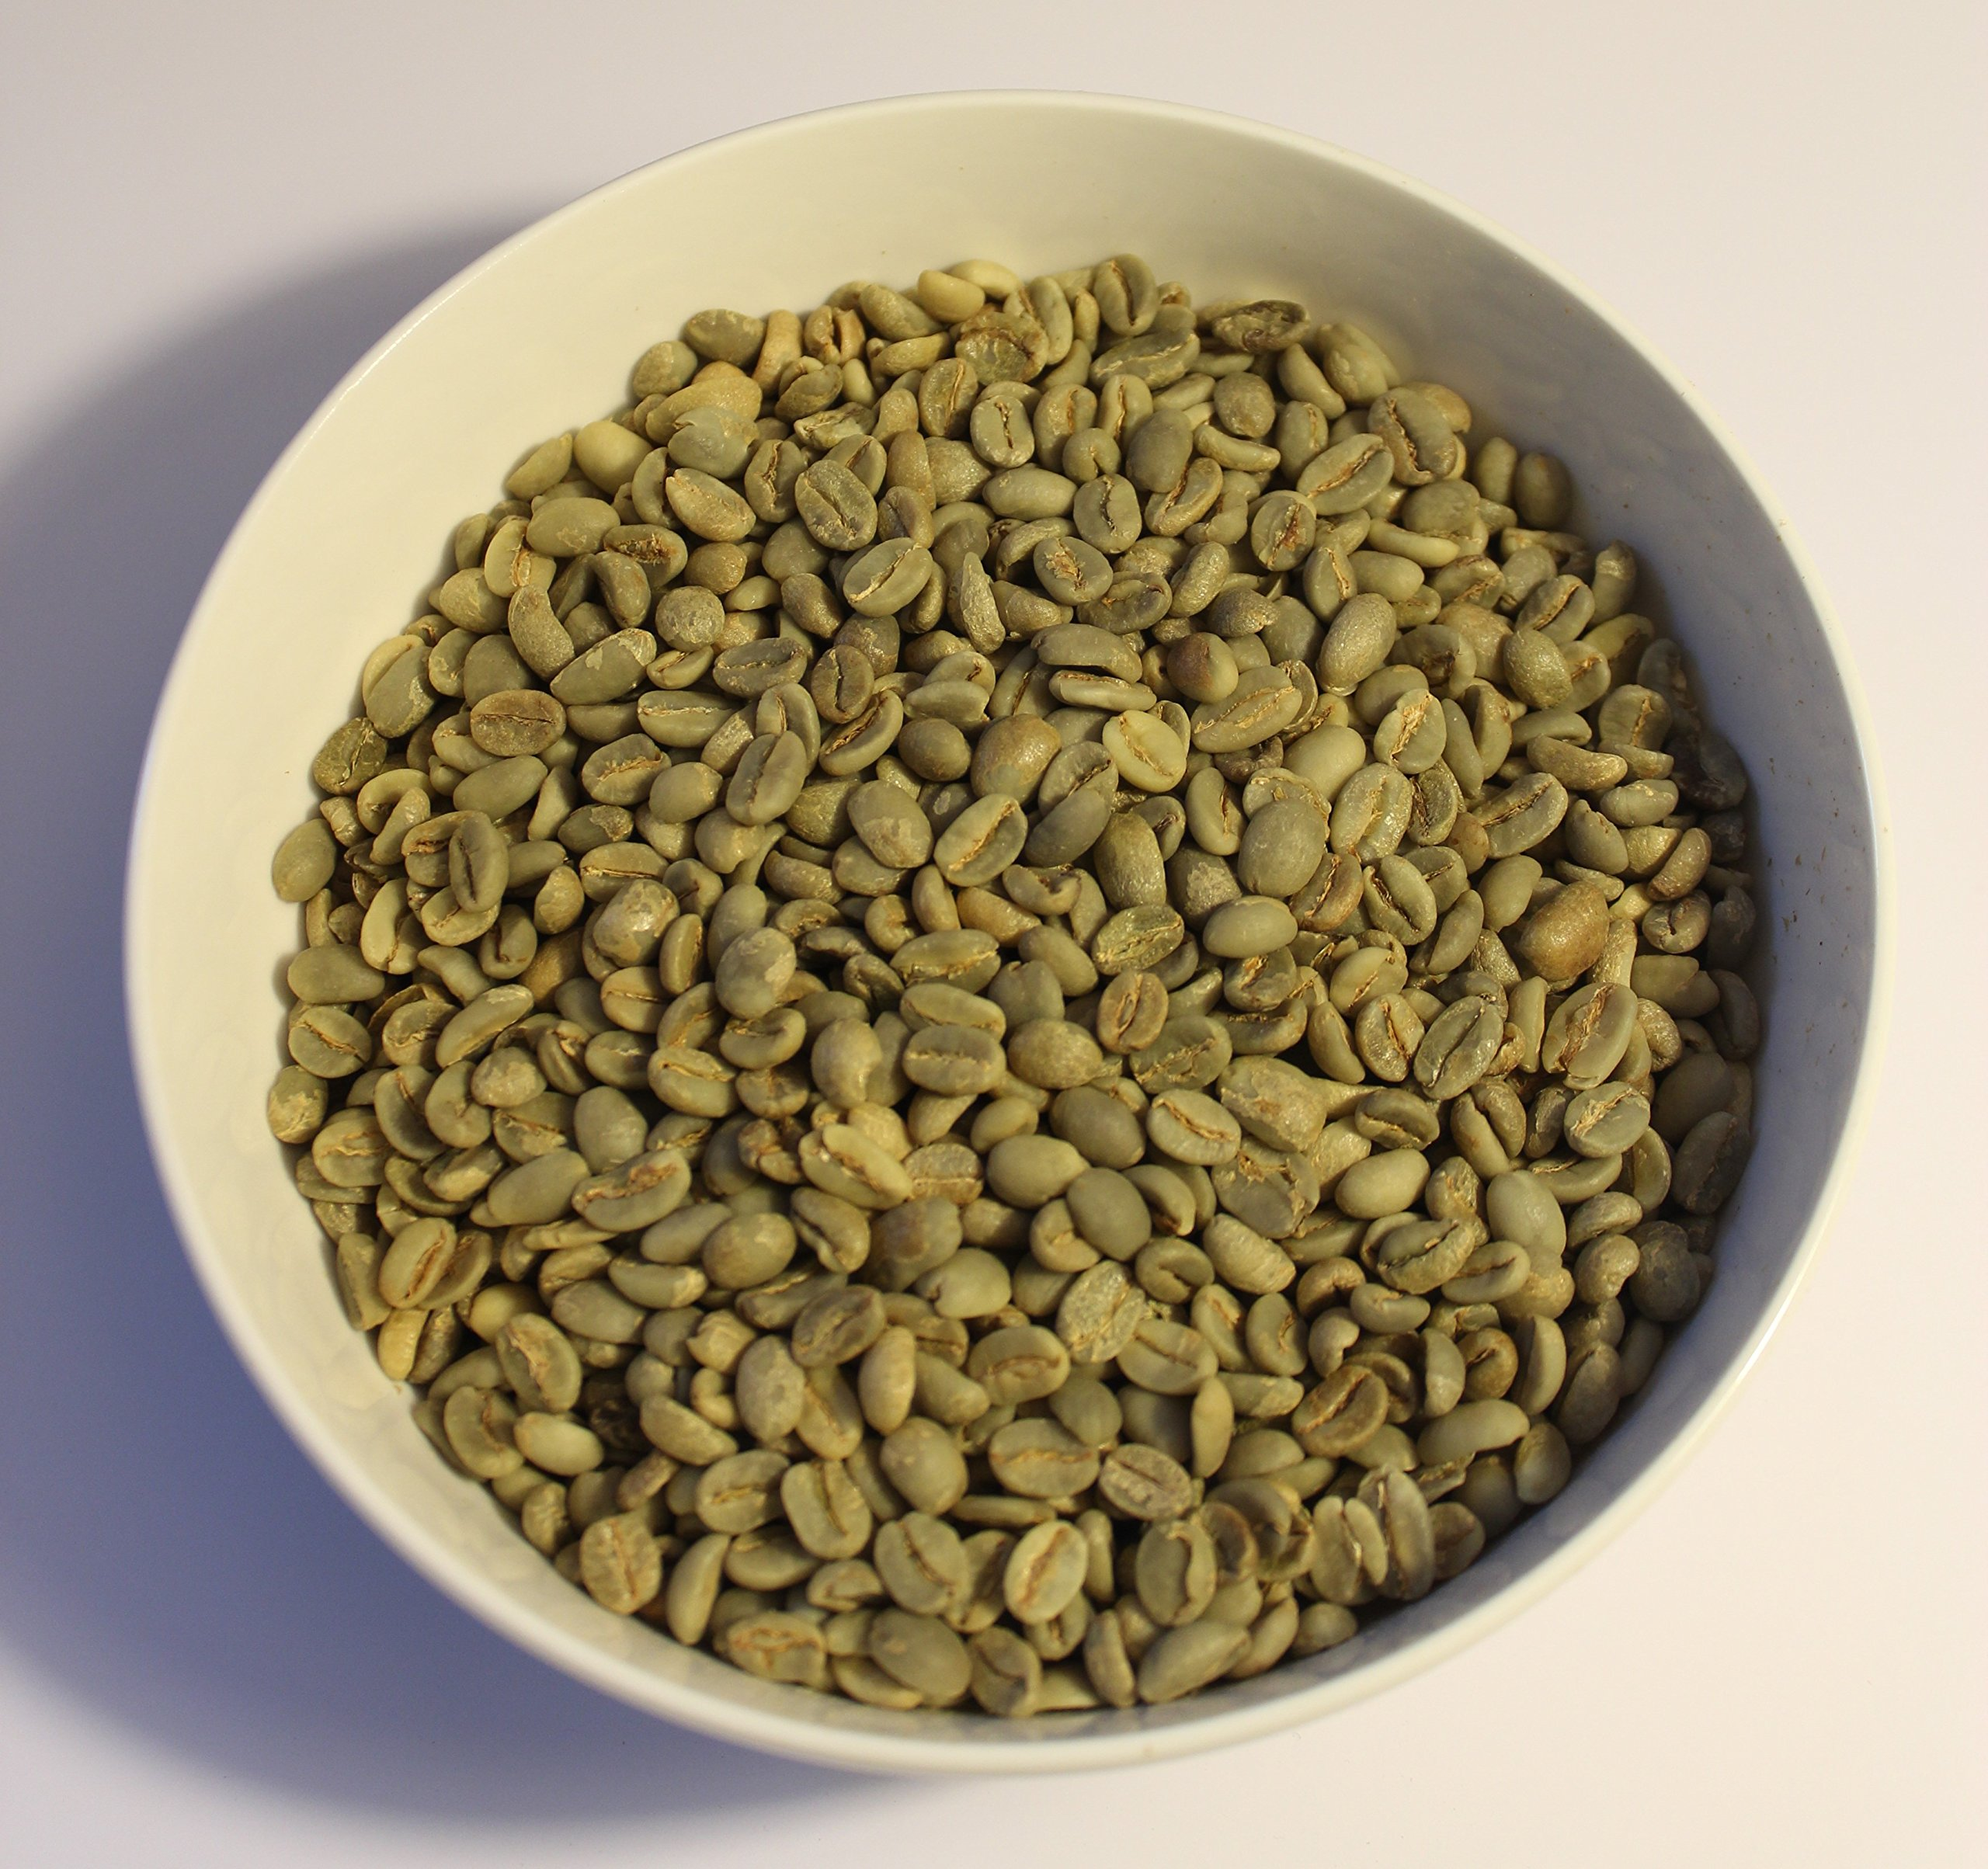 Yemen Mocca Burrai (Bura'a Mountain, Raymah) Green (Raw) Coffee Beans - Fresh Current Crop, May 8, 2018 Arrival - From North Country Roasters, (10 Pounds) by Yemen Mocca Burrai Coffere Beans (Image #1)